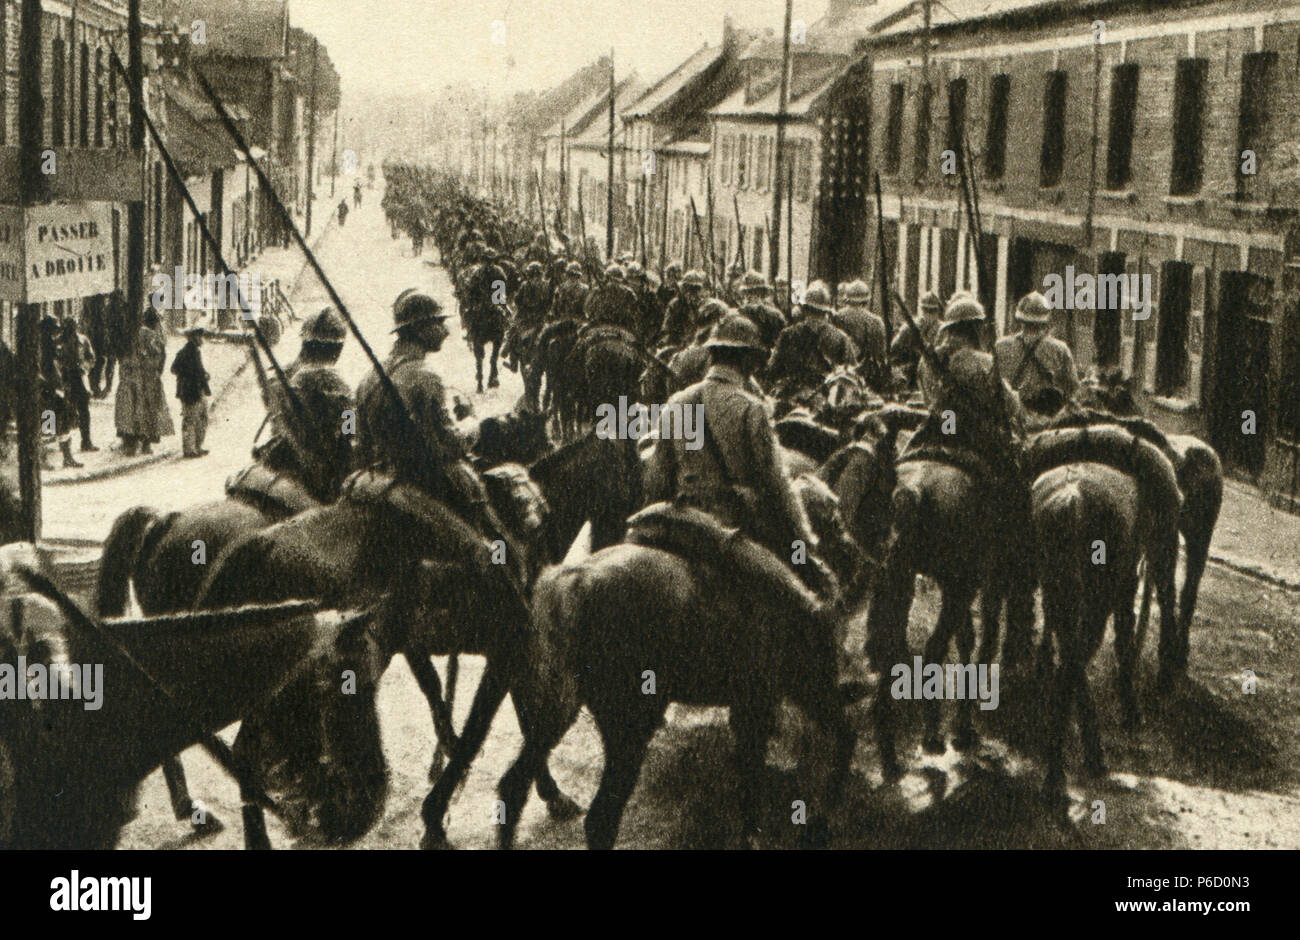 cavalry, military horse, ww1, wwi, world war one - Stock Image